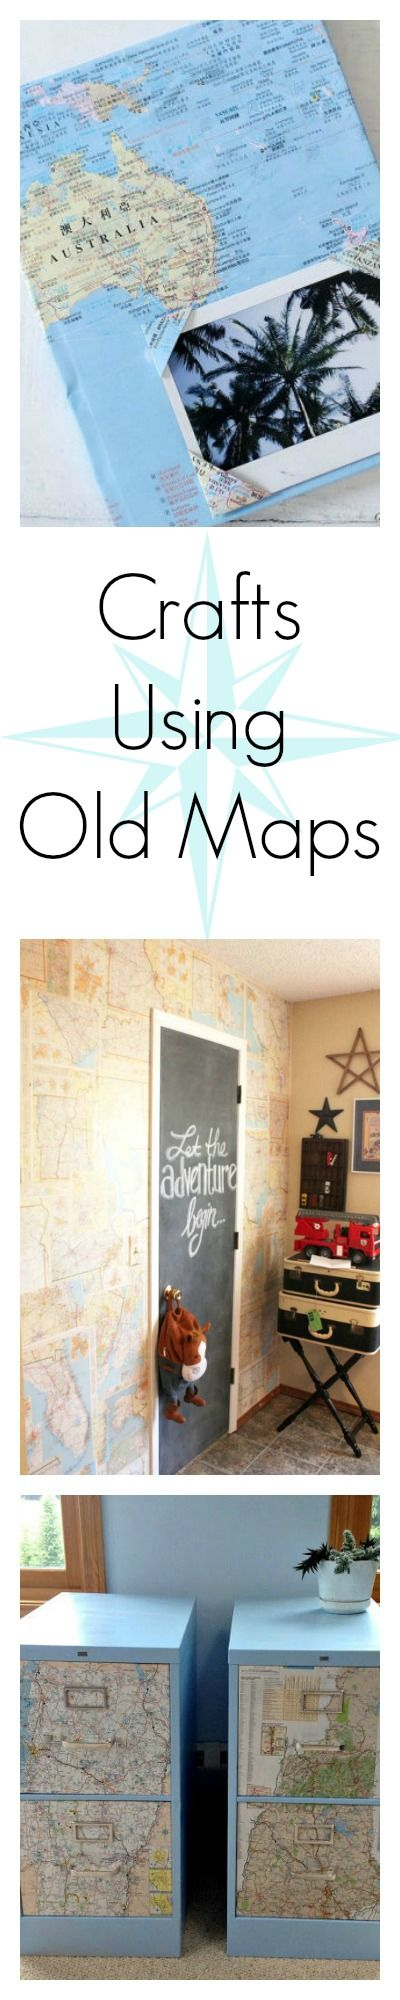 Best Old Maps Ideas On Pinterest Map Crafts Map Projects - How to do us map on pallet